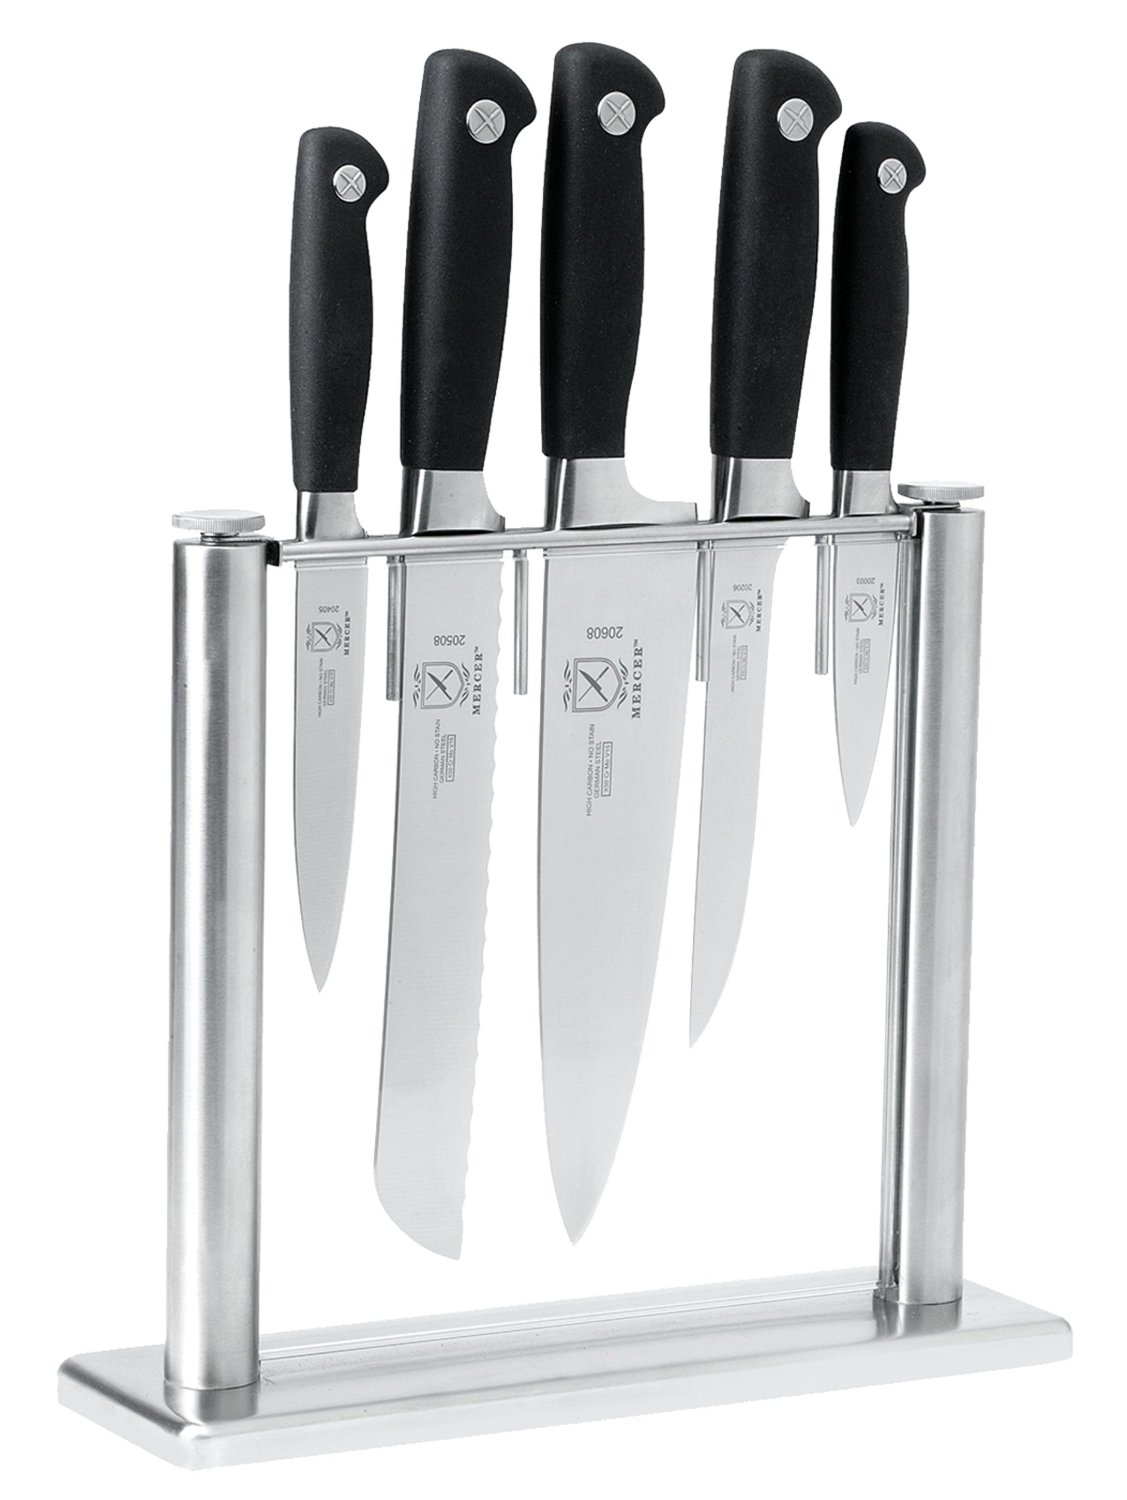 choosing the best knife set for your kitchen the zwilling j a henckels professional s knife block set 7